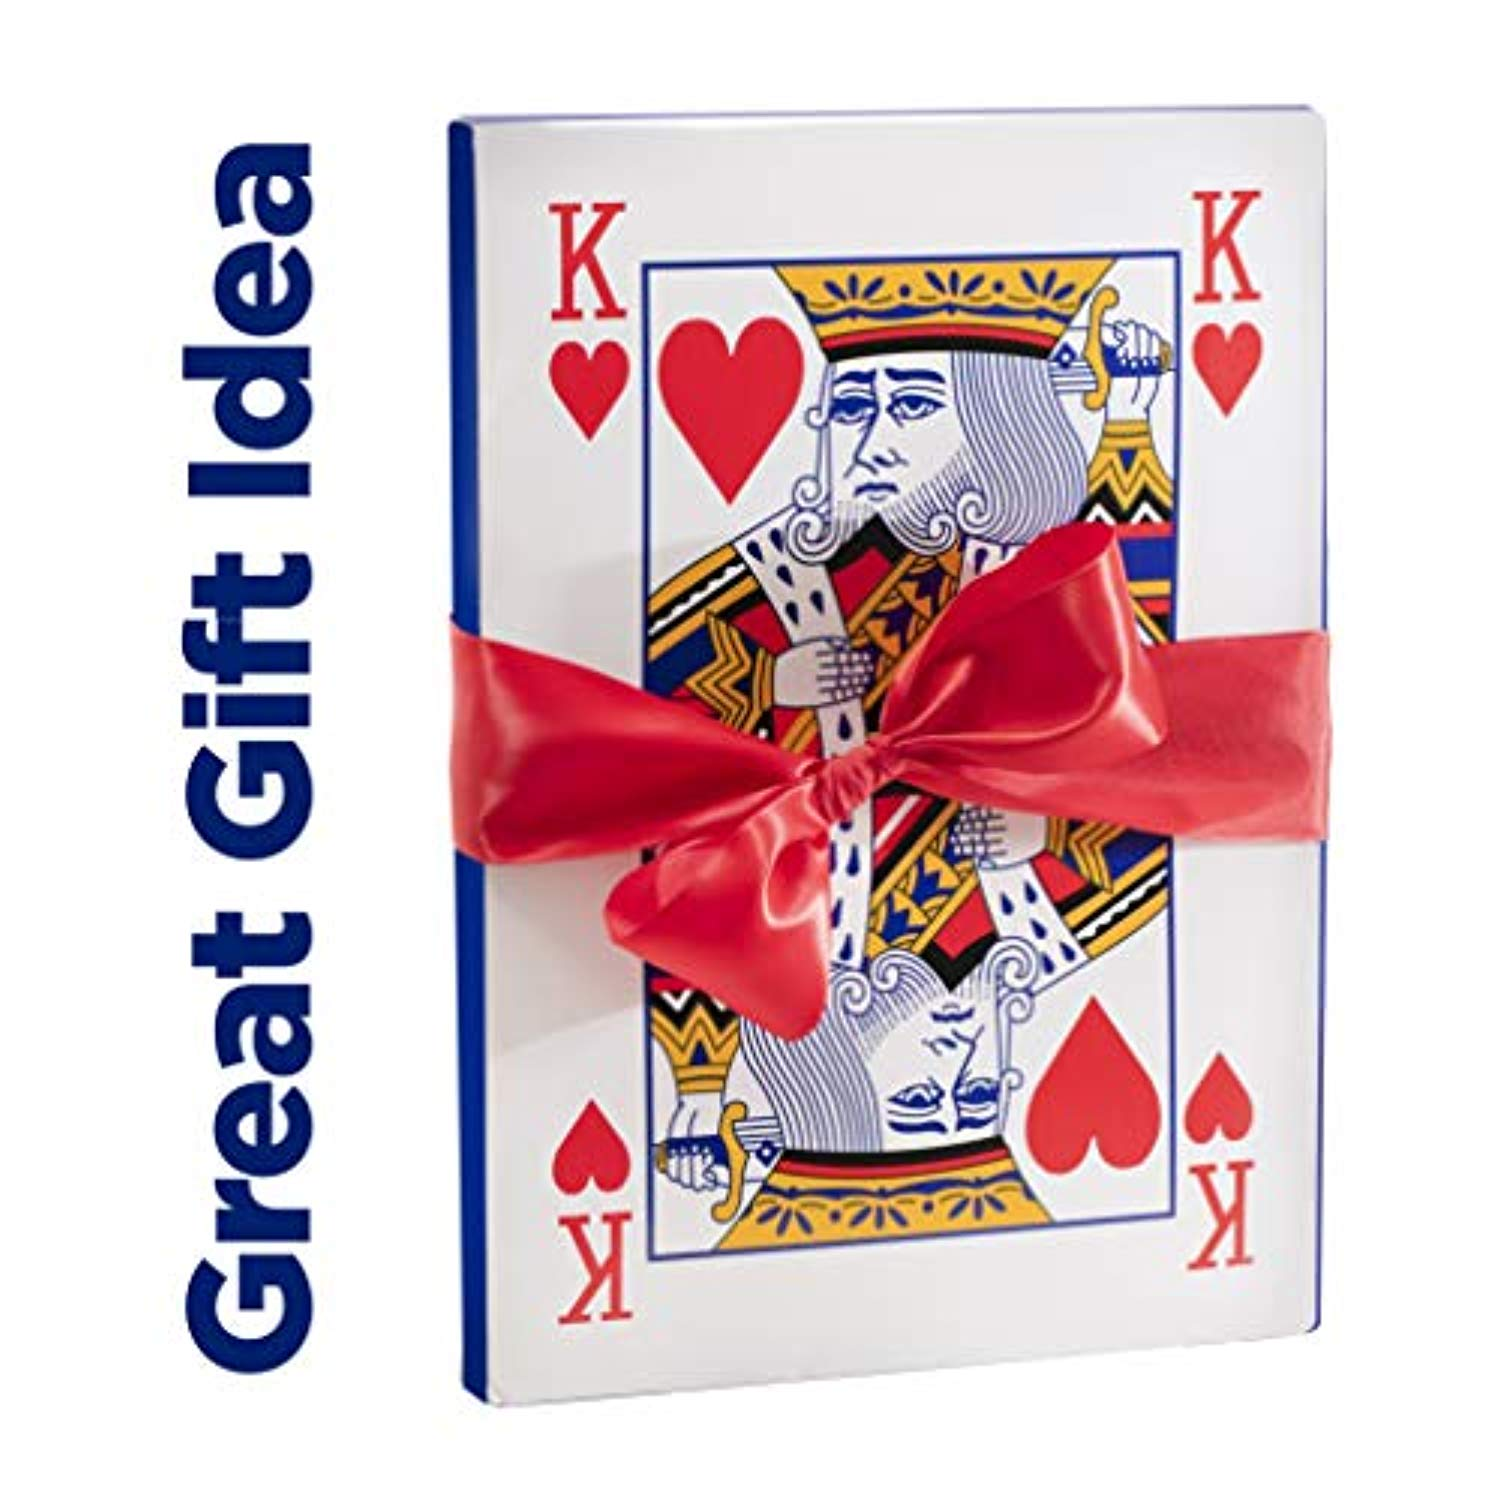 Jumbo Playing Cards Full Deck Huge Poker Index Playing Cards Fun for All Ages!